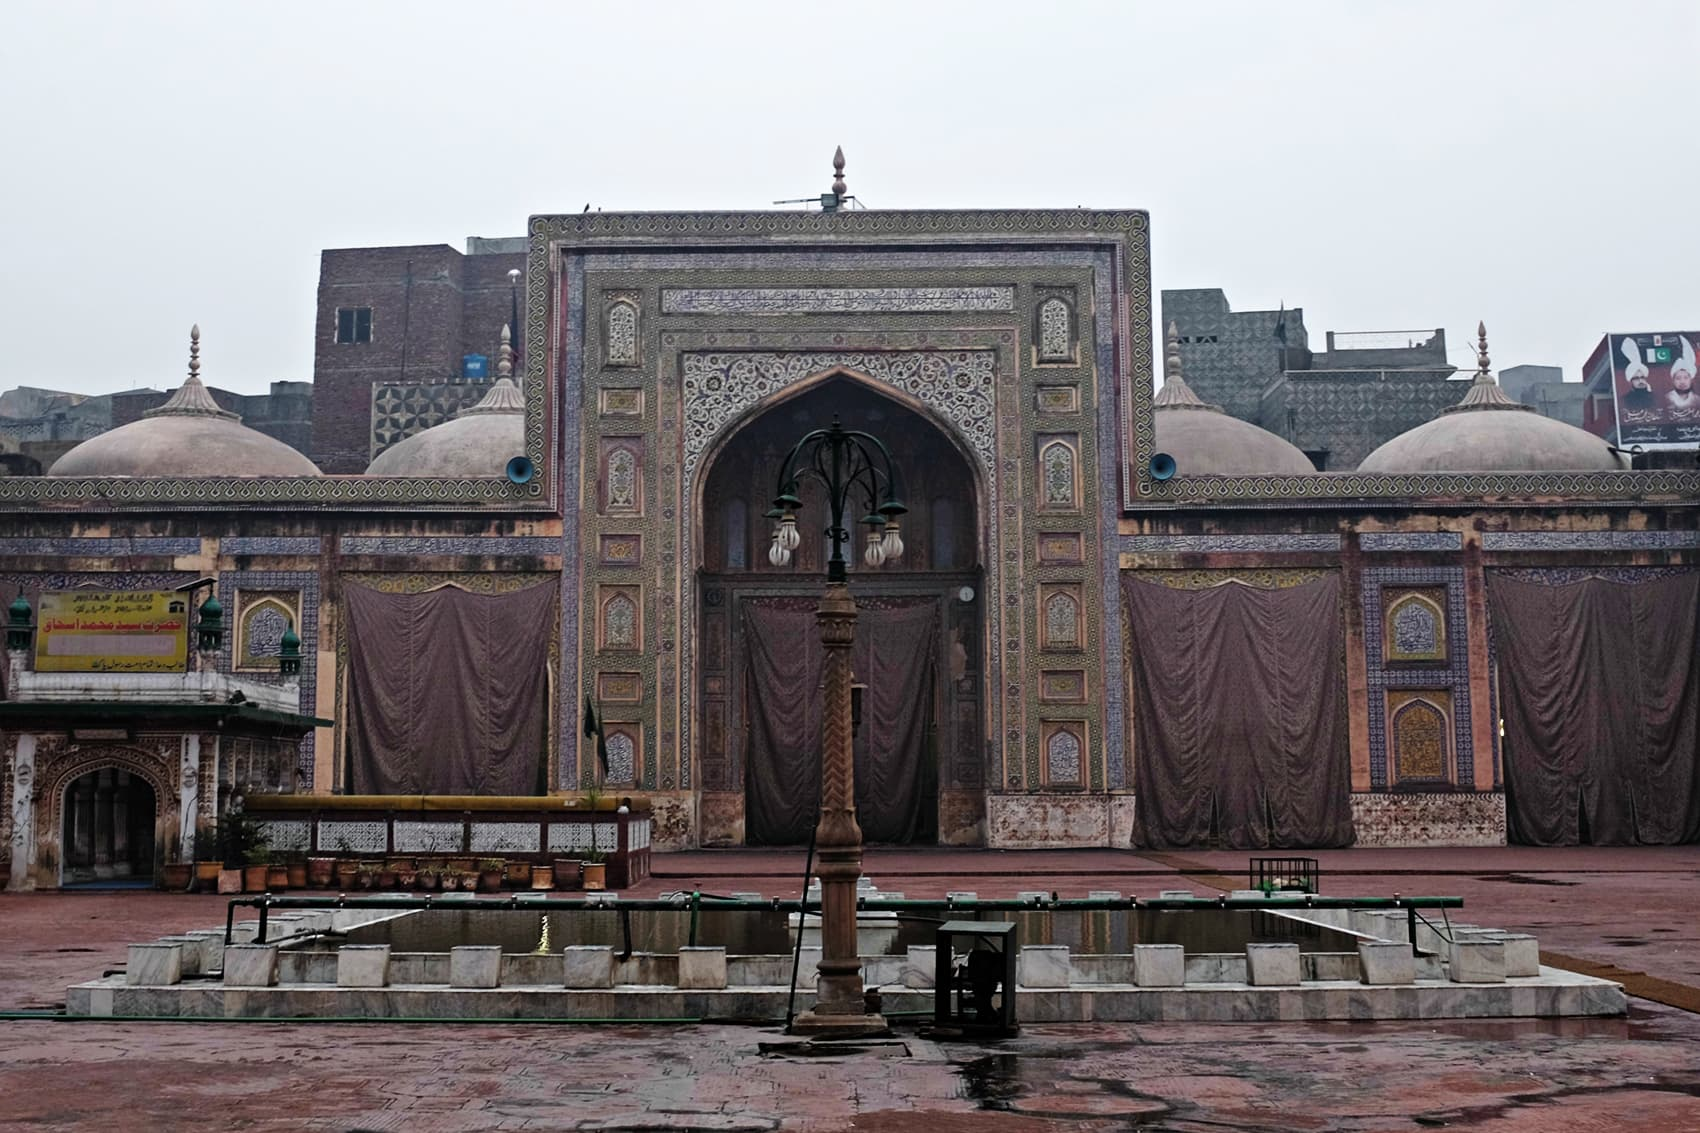 Begum Shah Mosque Lahore, A visual delight – Maryam Zamani and Wazir Khan Mosques - Pakistan ...